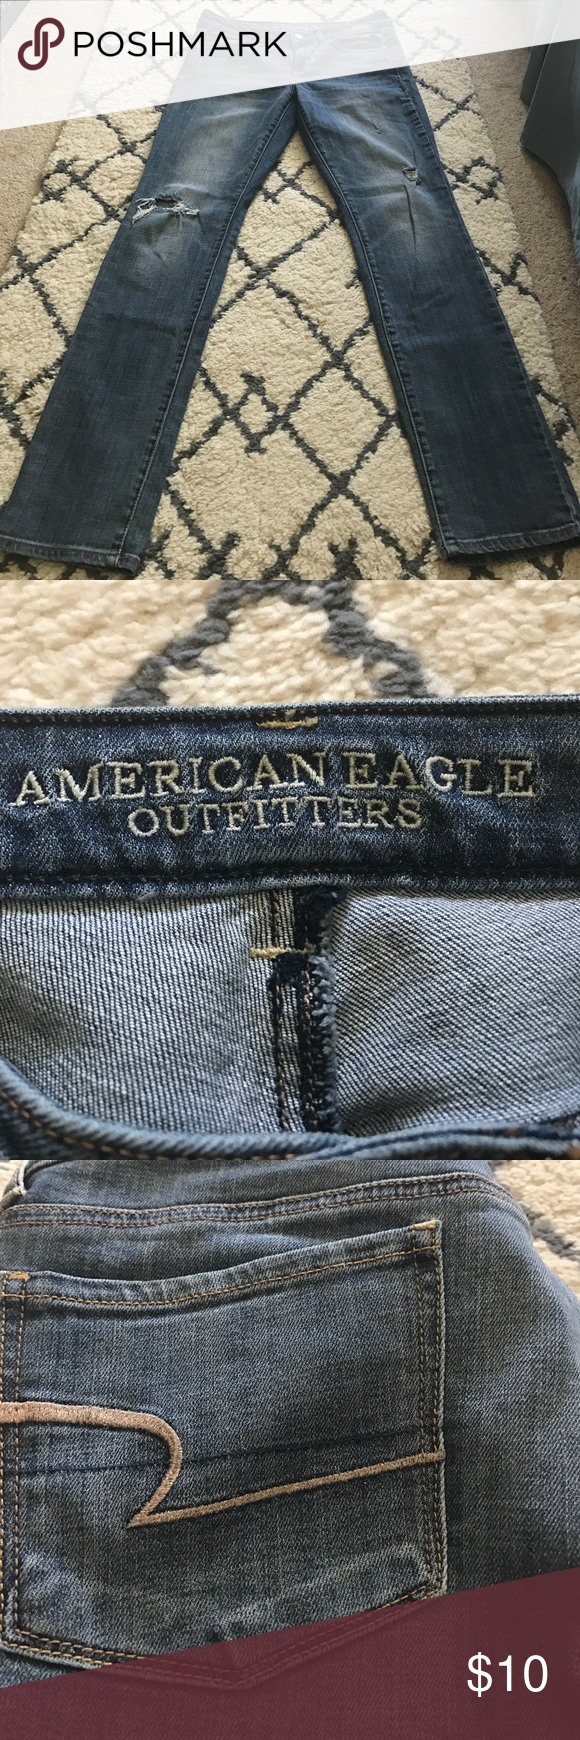 AE Jeans Light wash American Eagle Outfitters Jeans Skinny